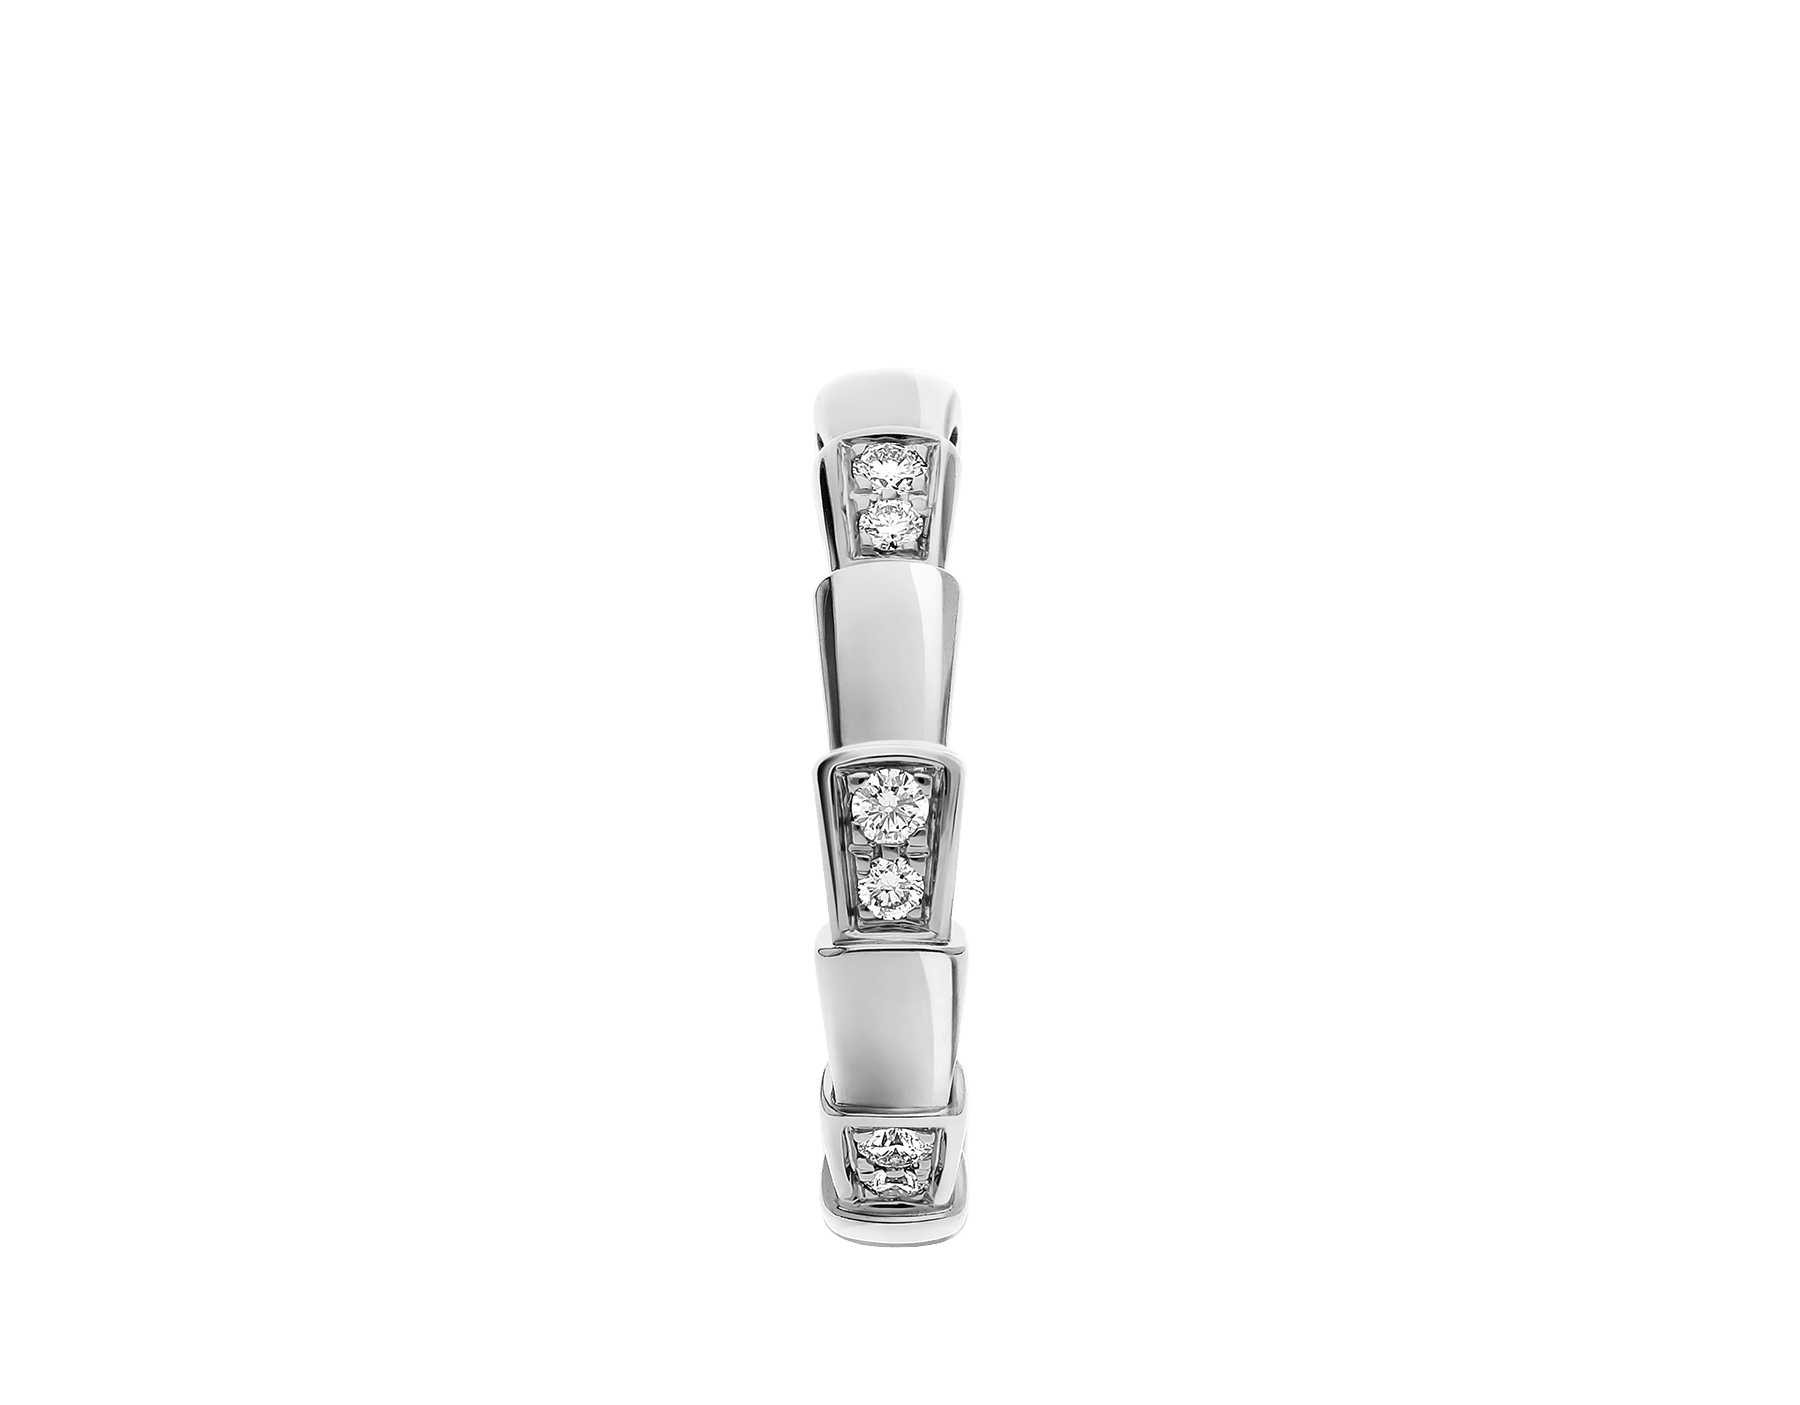 Serpenti Viper band ring in 18 kt white gold, set with demi-pavé diamonds. AN857898 image 2